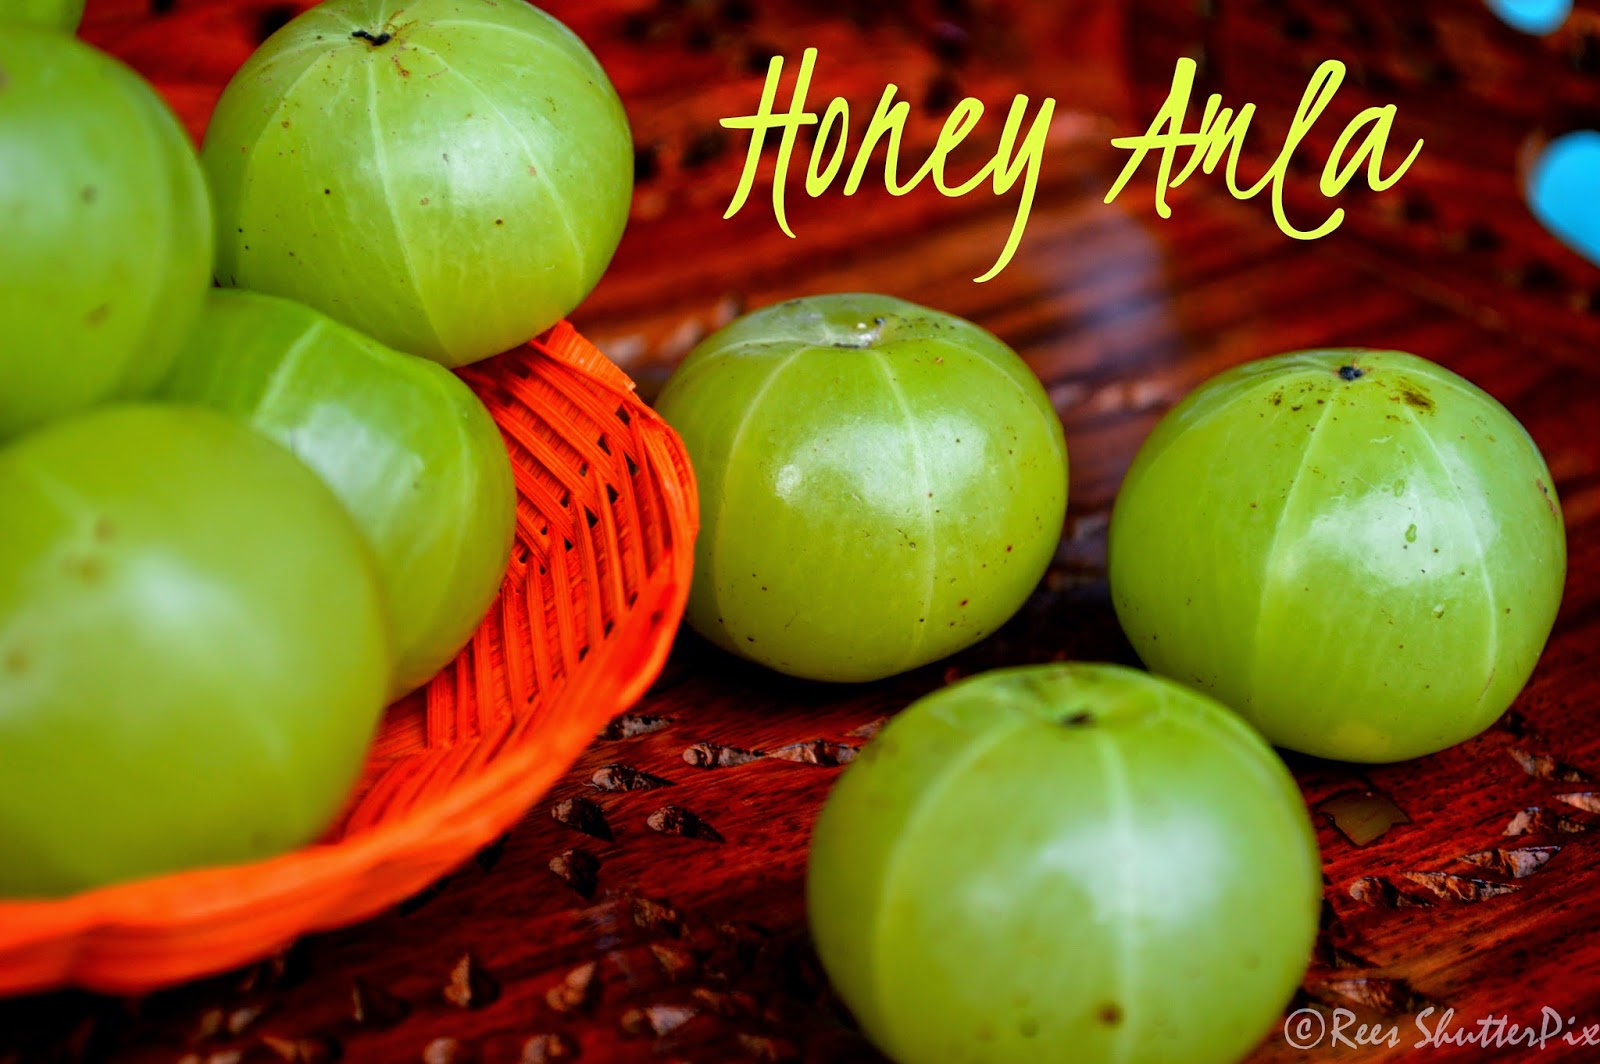 how to make amla honey, amla in honey recipe